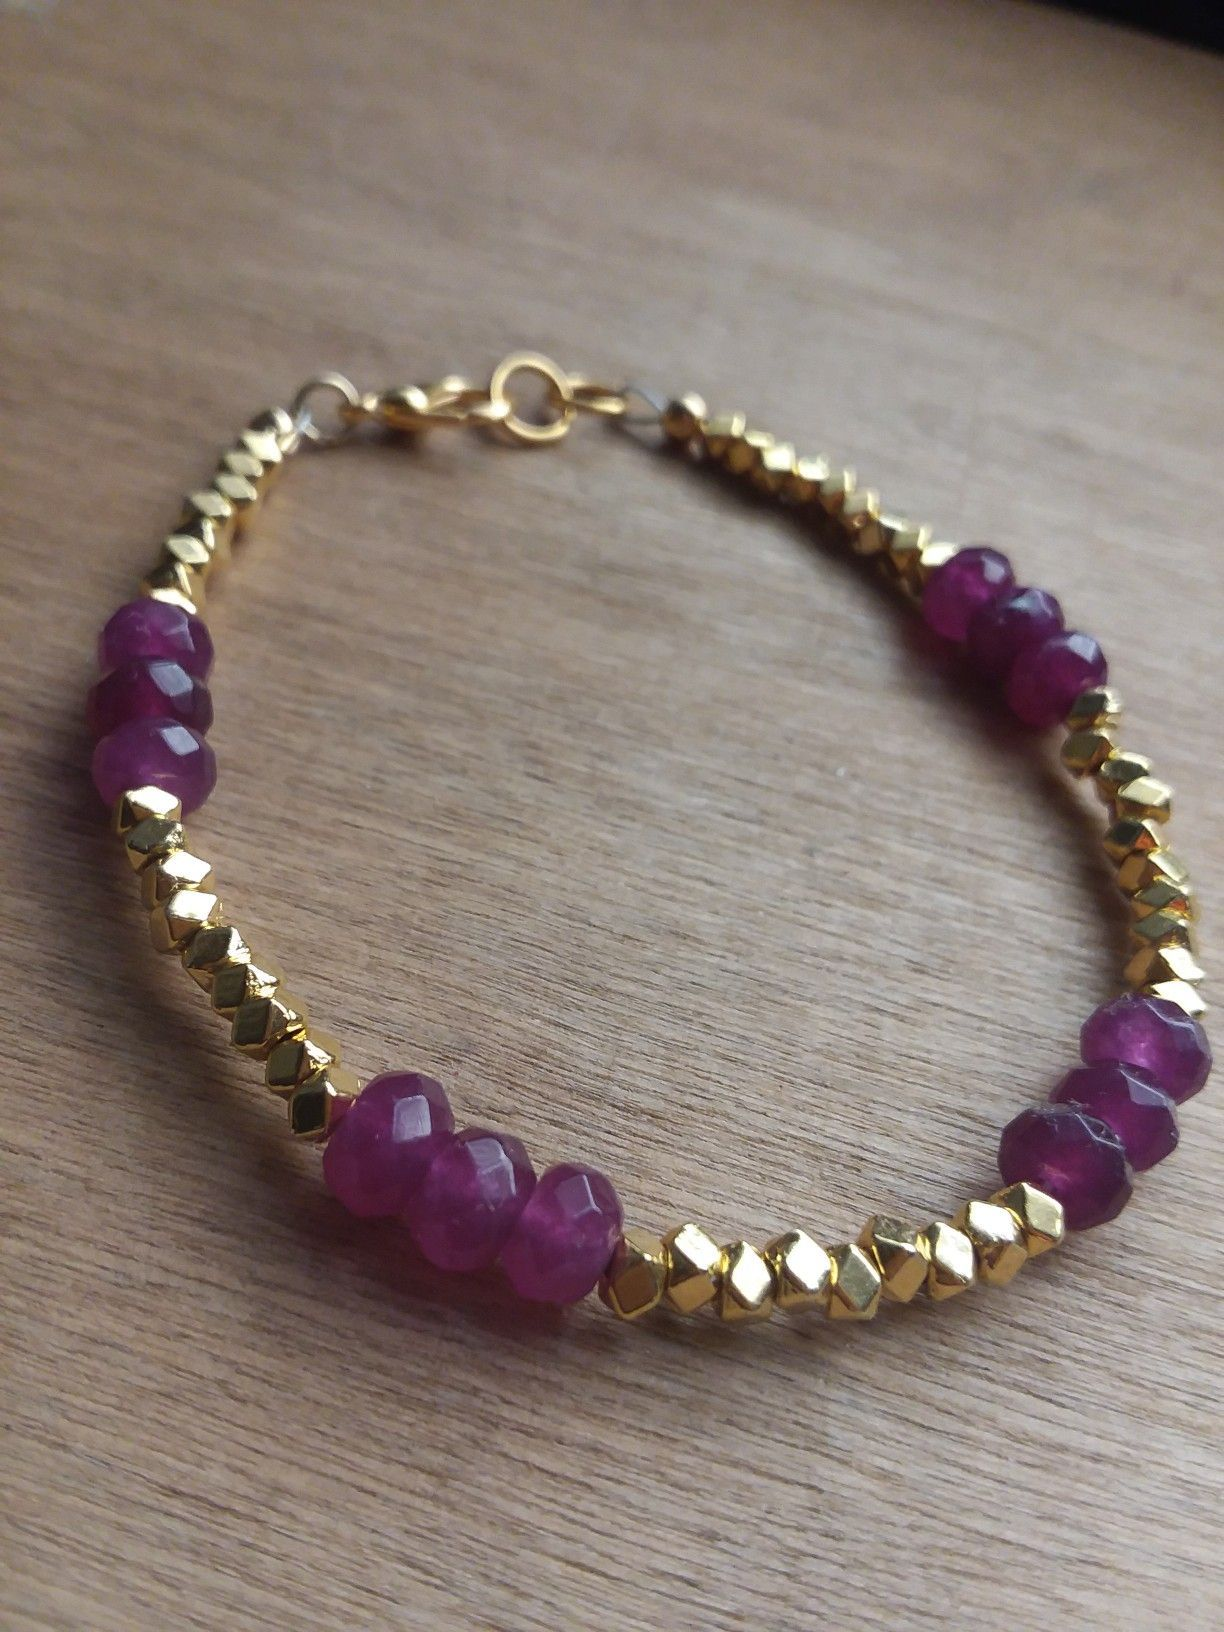 Natural Gemstone Bracelet With Gold Beads Handmade Www Etsy Annieperezjewelry